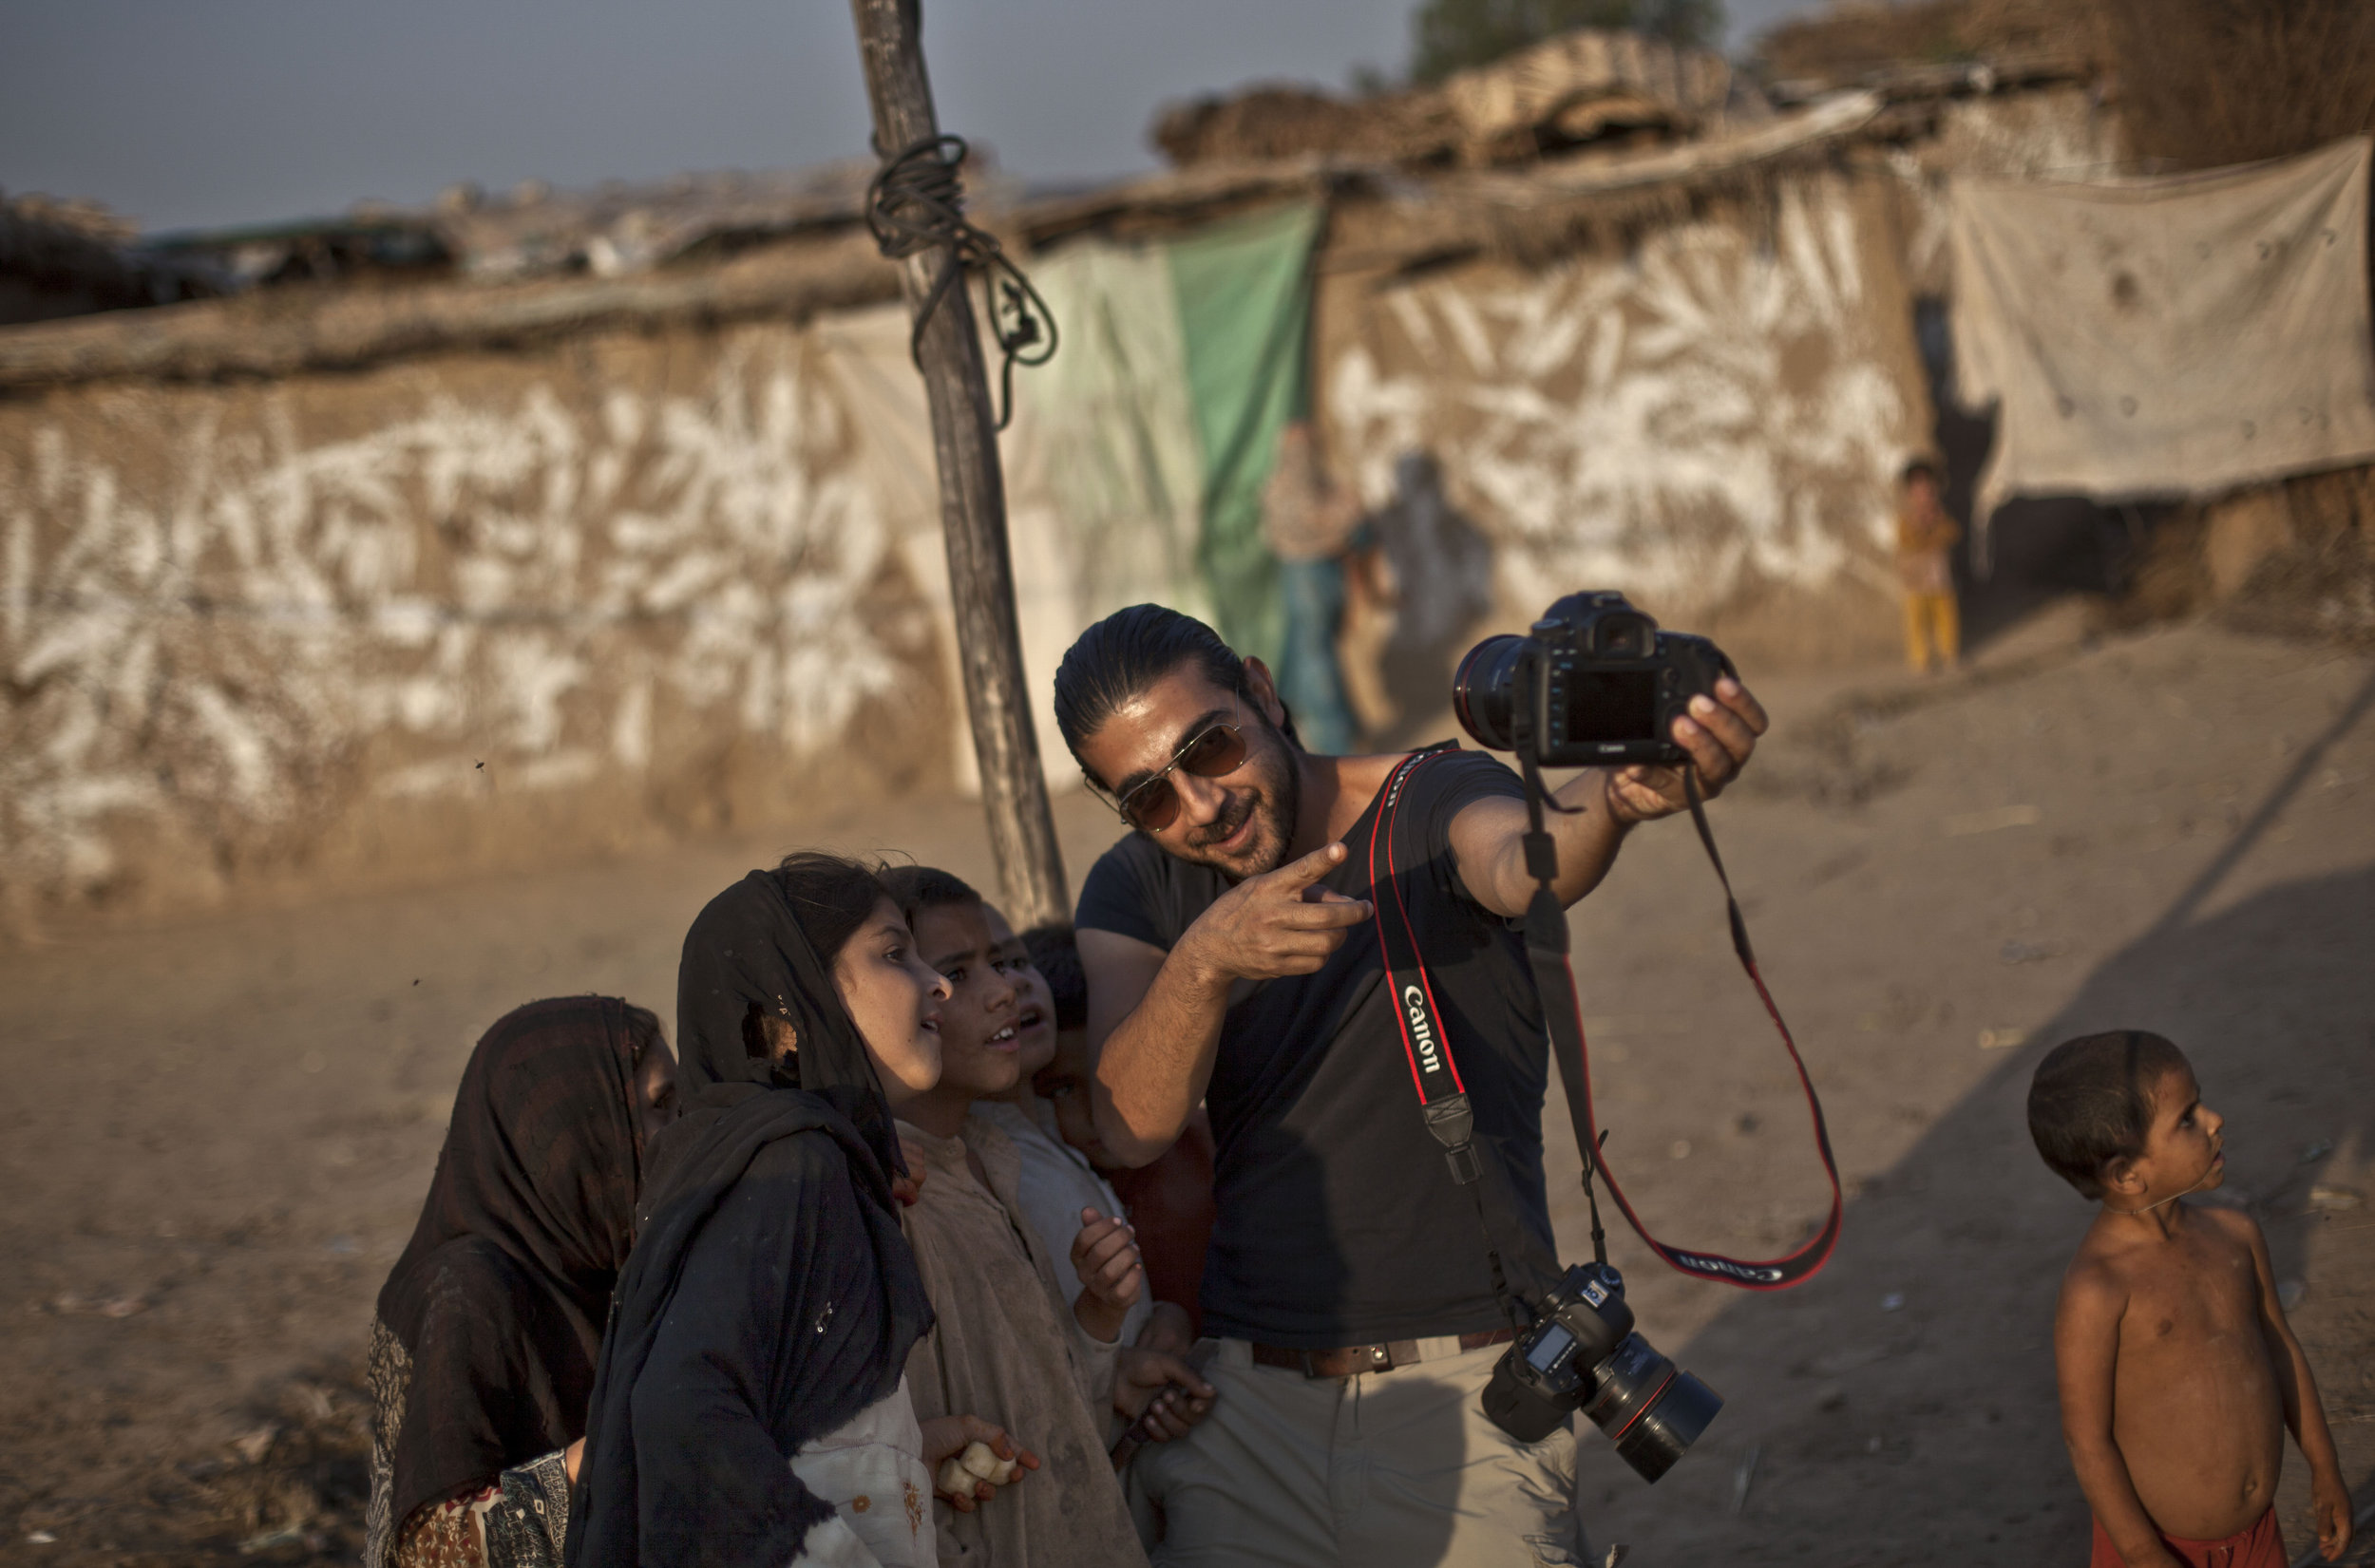 Pakistan's Chief Photographer Muhammed Muheisen shows Afghan refugee children how the camera works, in a poor neighborhood on the outskirts of Islamabad, Pakistan, Monday, Oct. 21, 2013. (AP Photo/Nathalie Bardou)